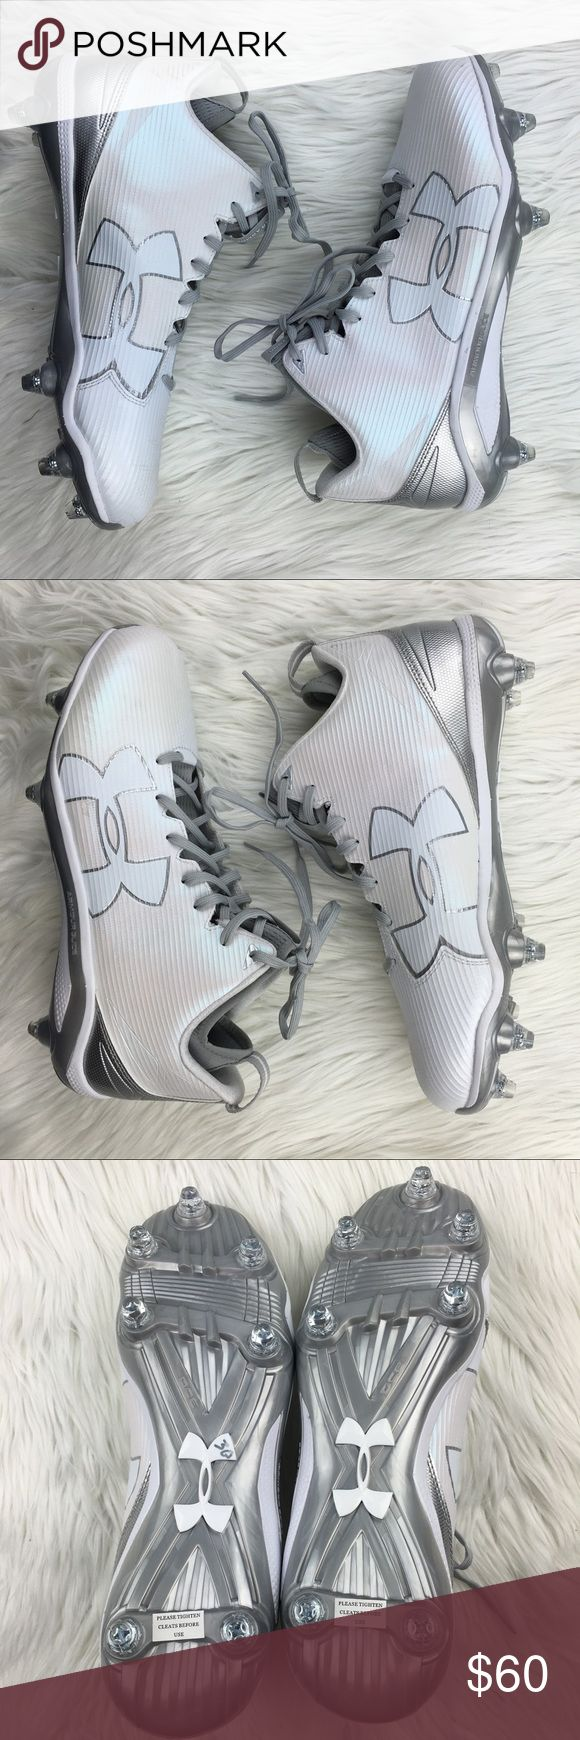 Under Armour white metallic cleats Sz 13.5 Under Armour white metallic cleats Sz 13.5. NWOT Under Armour Shoes Athletic Shoes